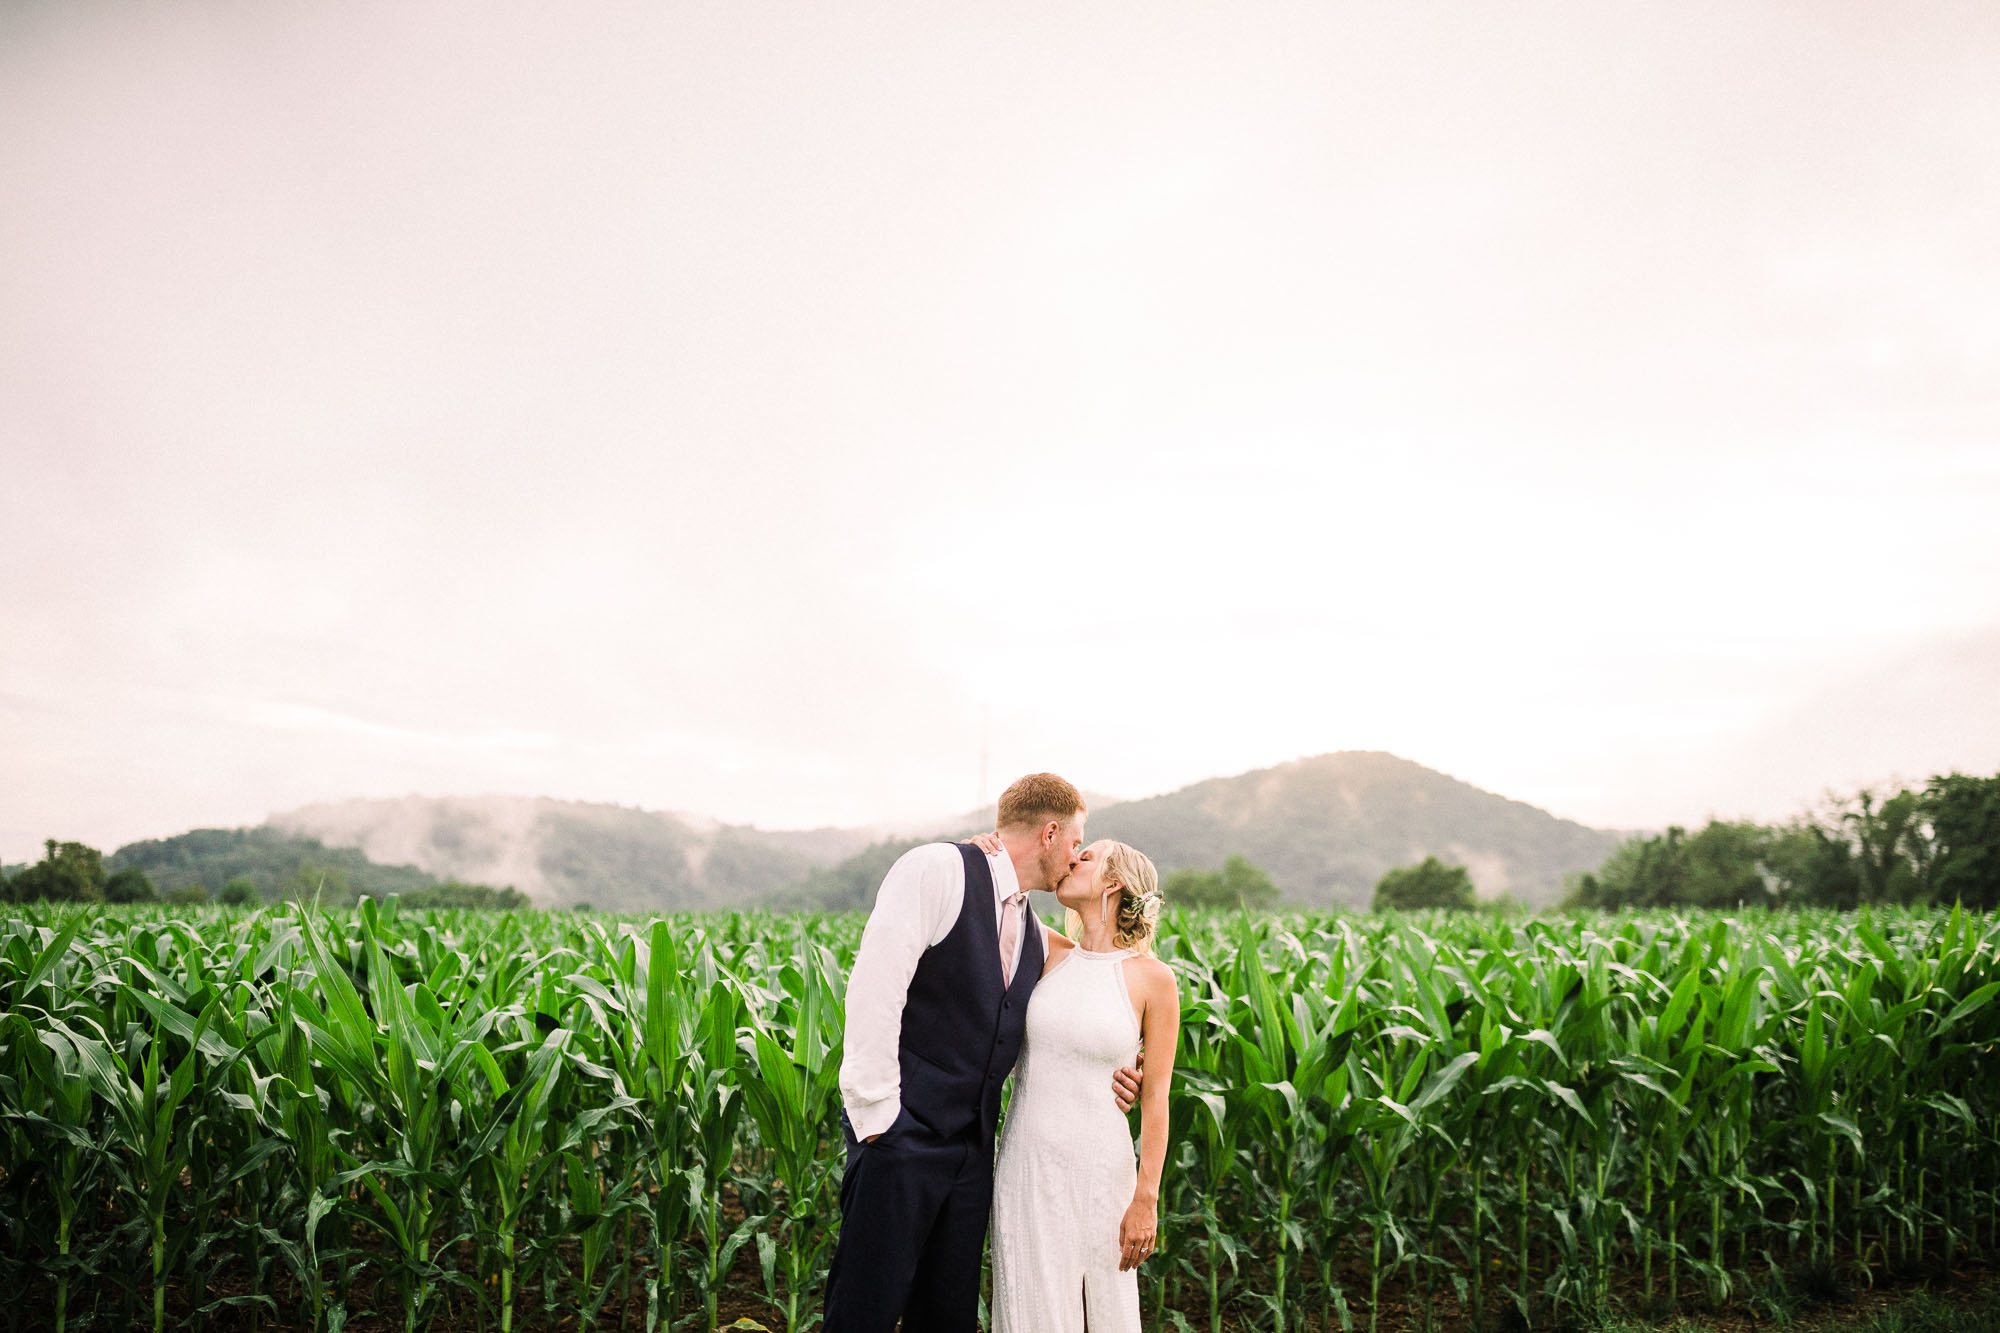 Muncy-backyard-farm-wedding-5468.jpg